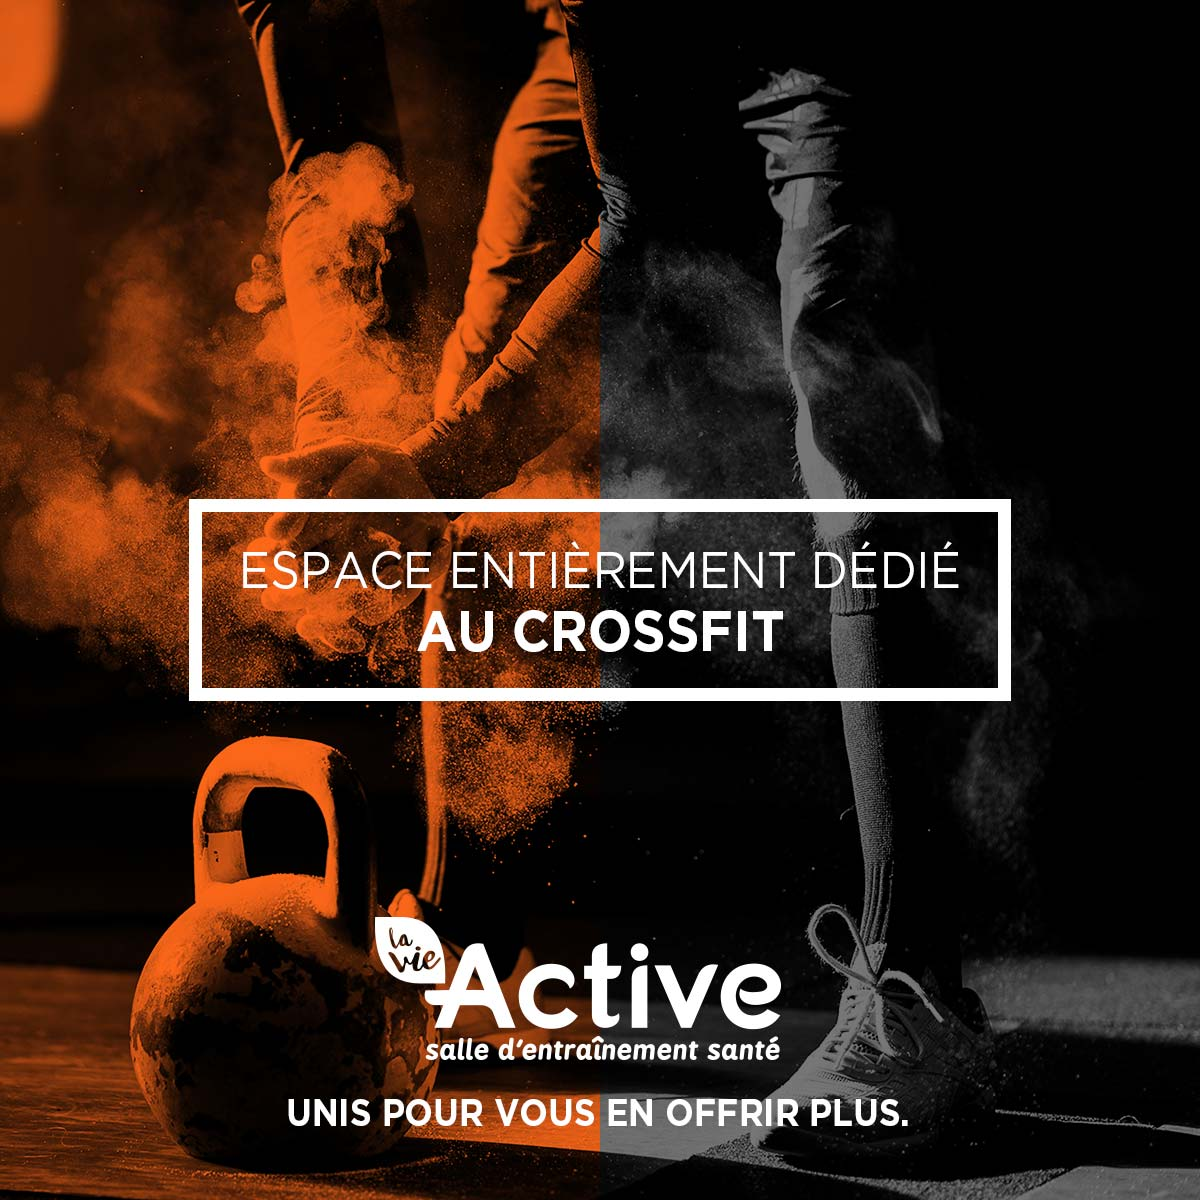 Crossfit - La Vie Active